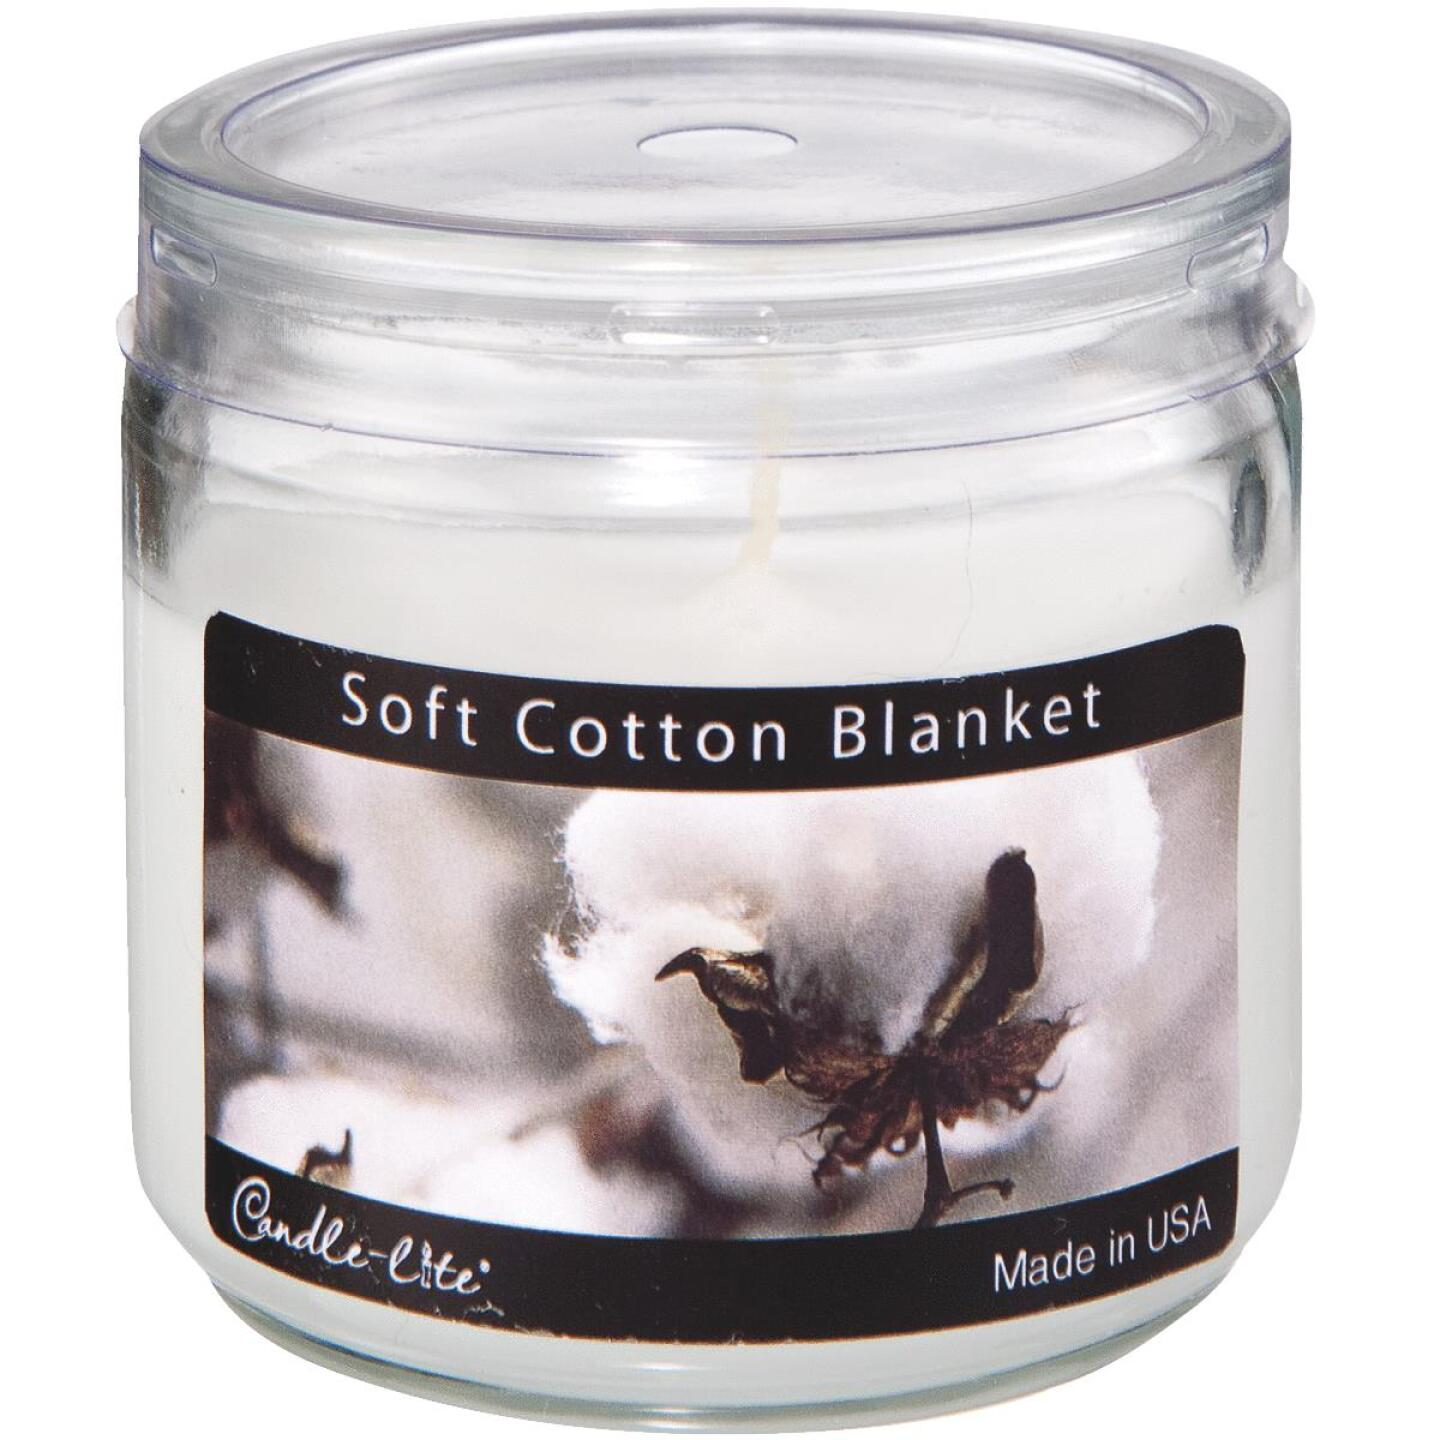 Candle-Lite Everyday 3.5 Oz. Soft Cotton Blanket Jar Candle Image 1